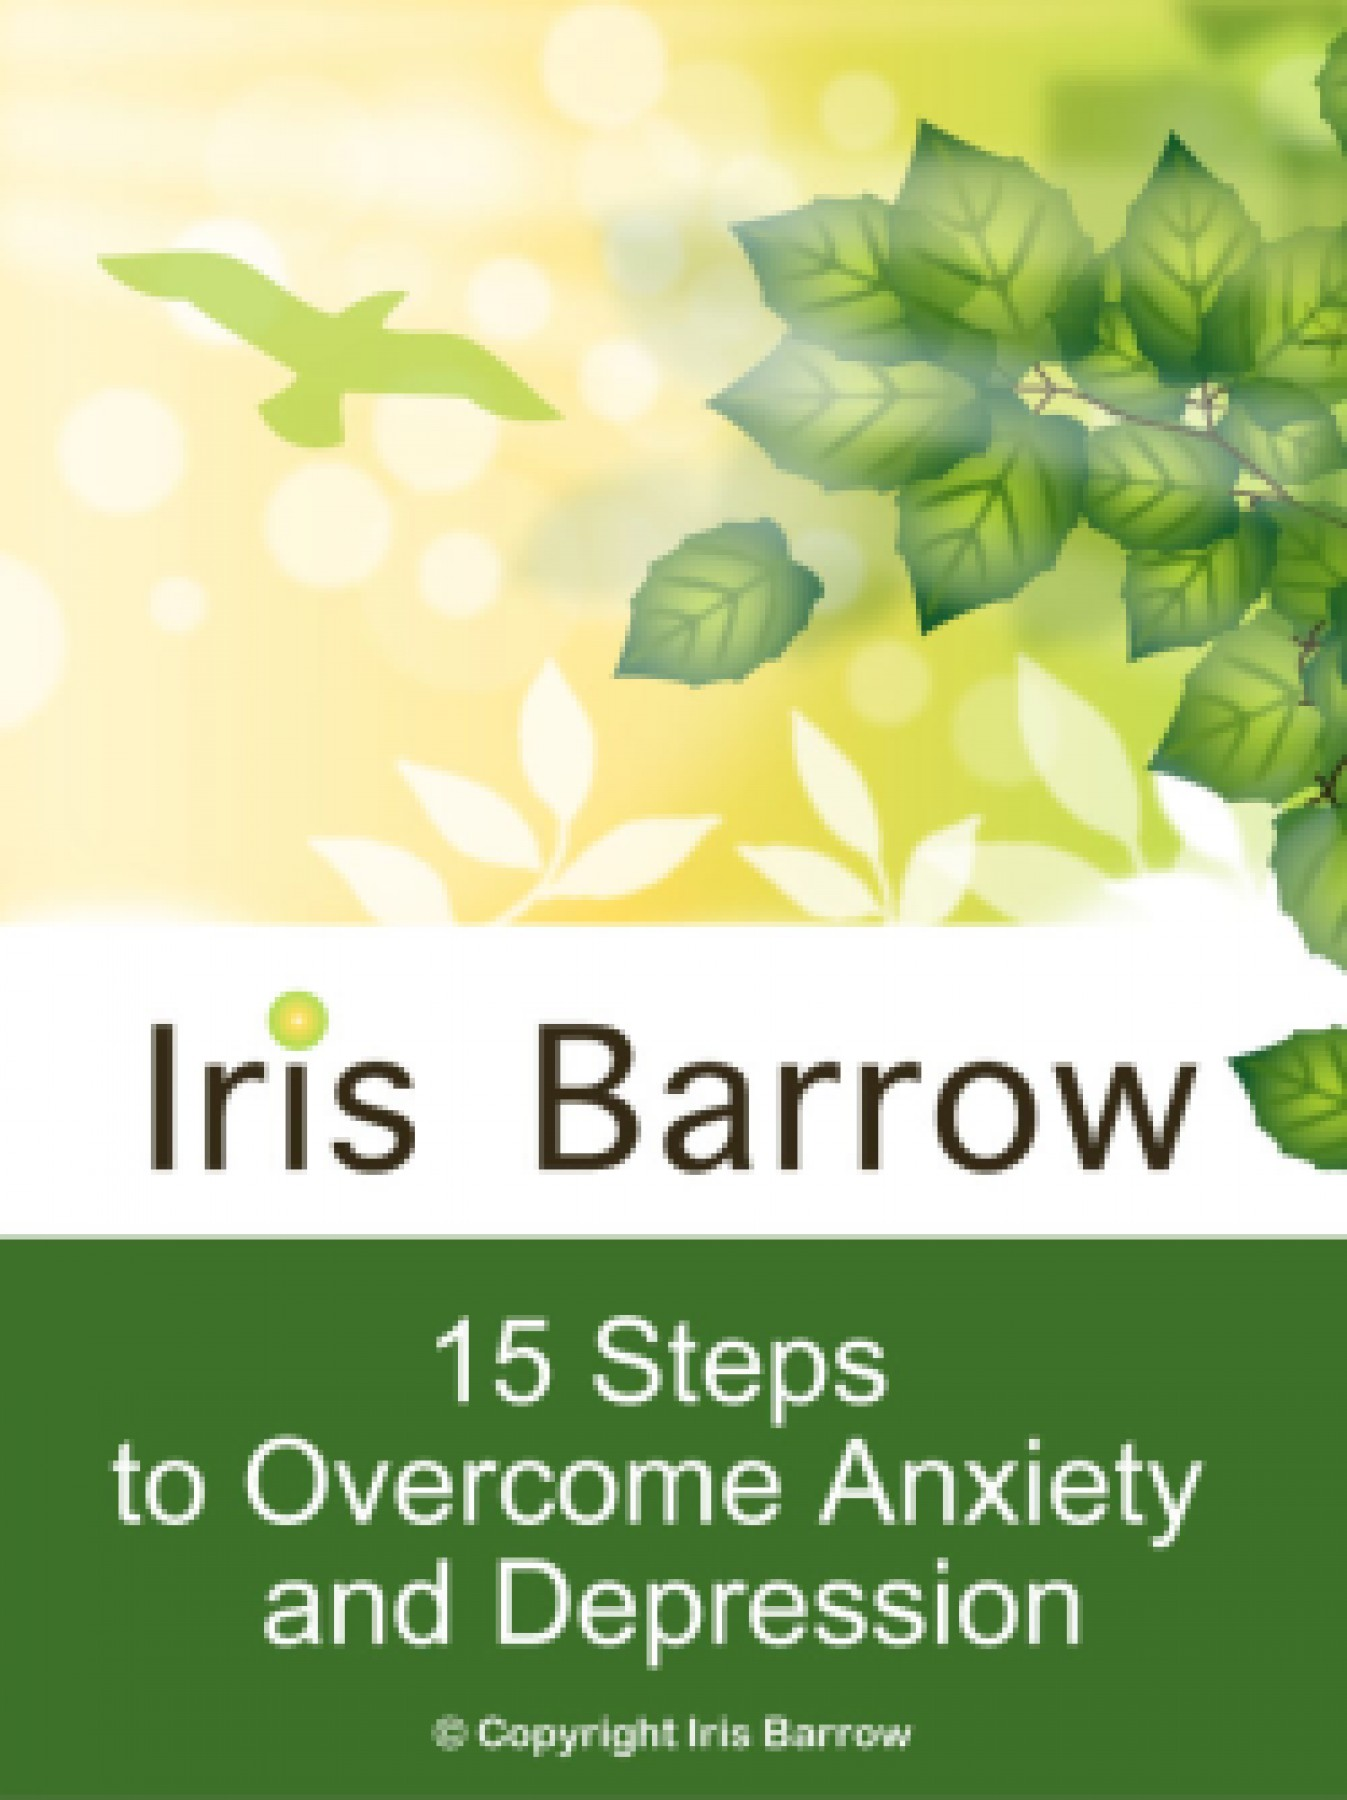 15 Steps to Overcome Anxiety and Depression